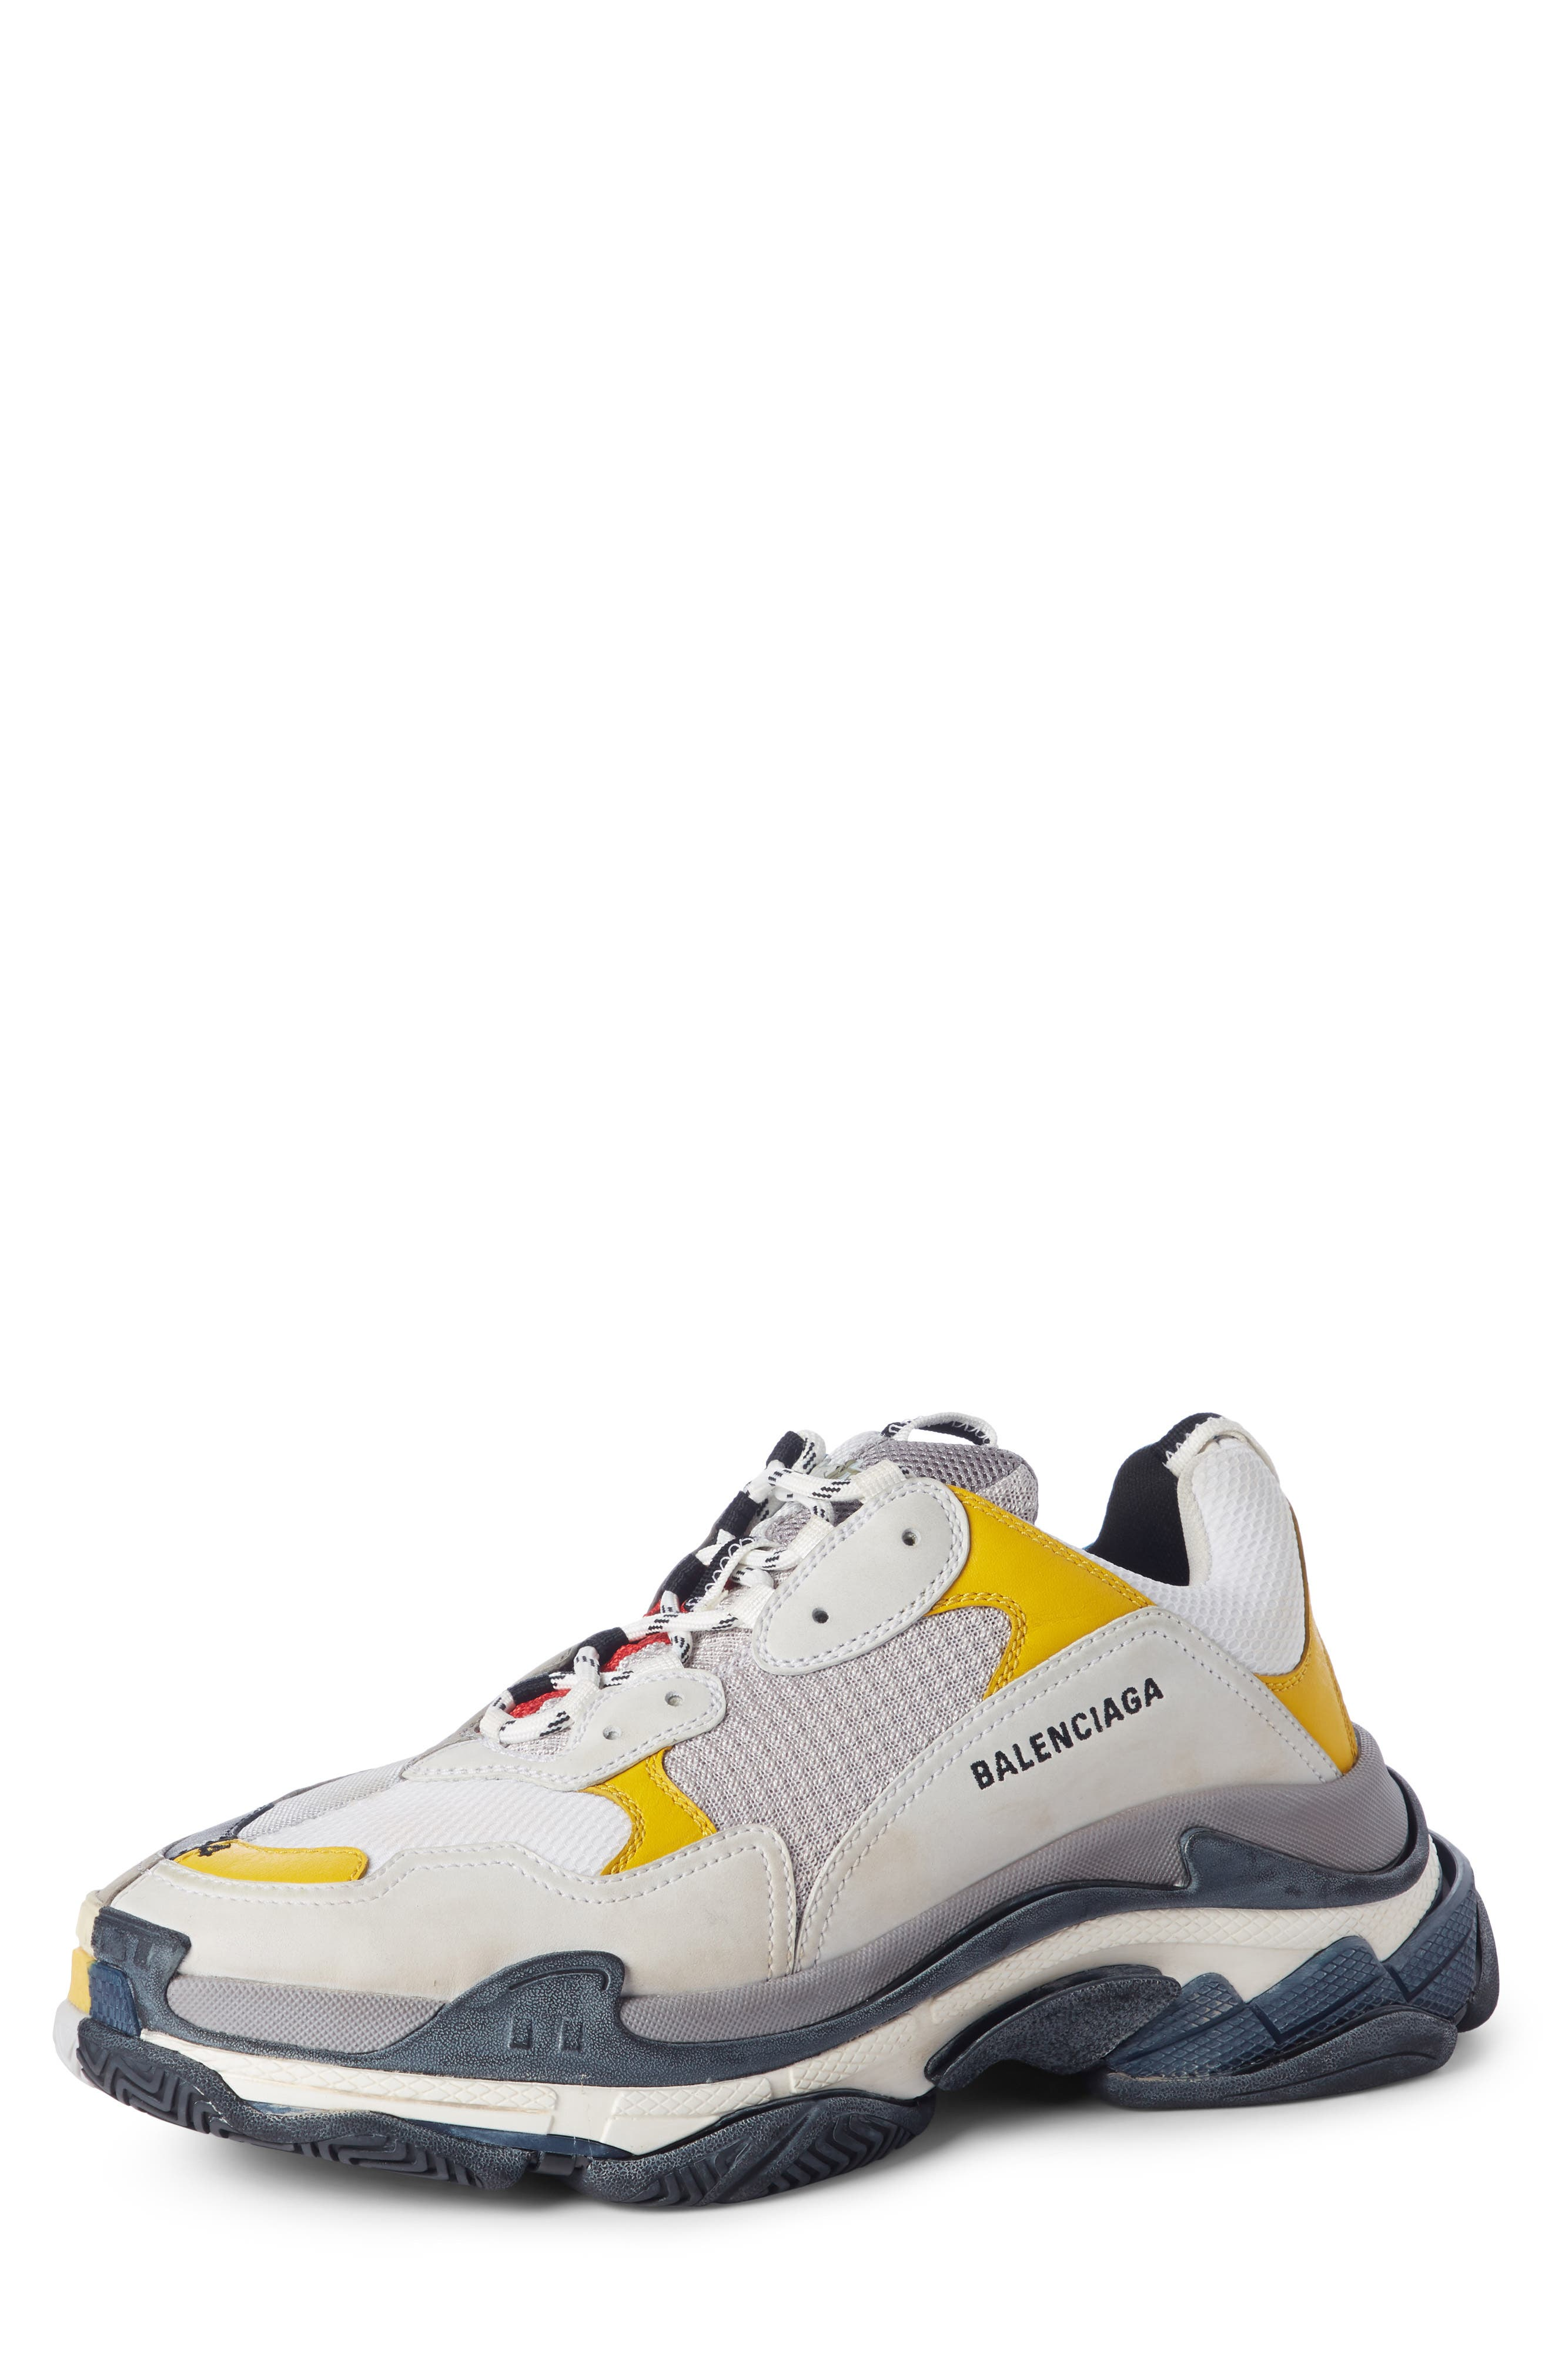 Triple-S Split Sneaker,                         Main,                         color, BEIGE/ ROUGE